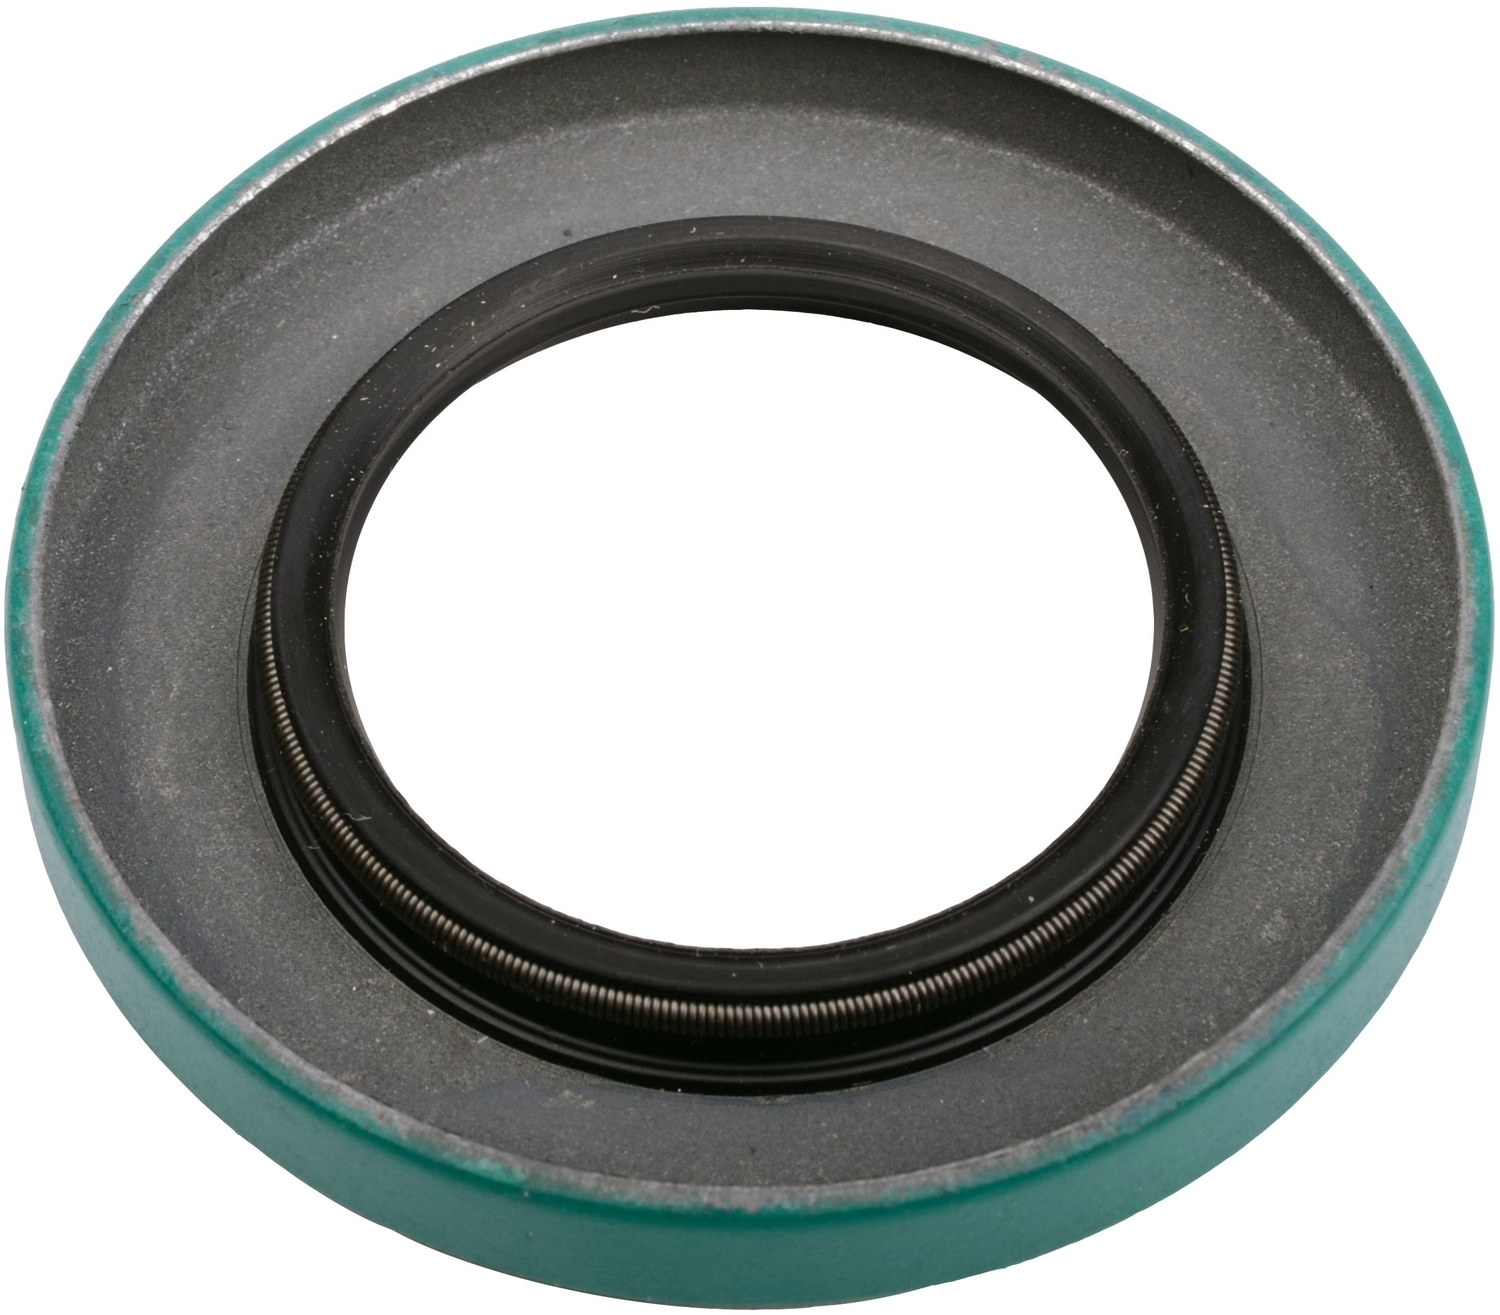 SKF (CHICAGO RAWHIDE) - Manual Trans Input Shaft Seal - SKF 8550